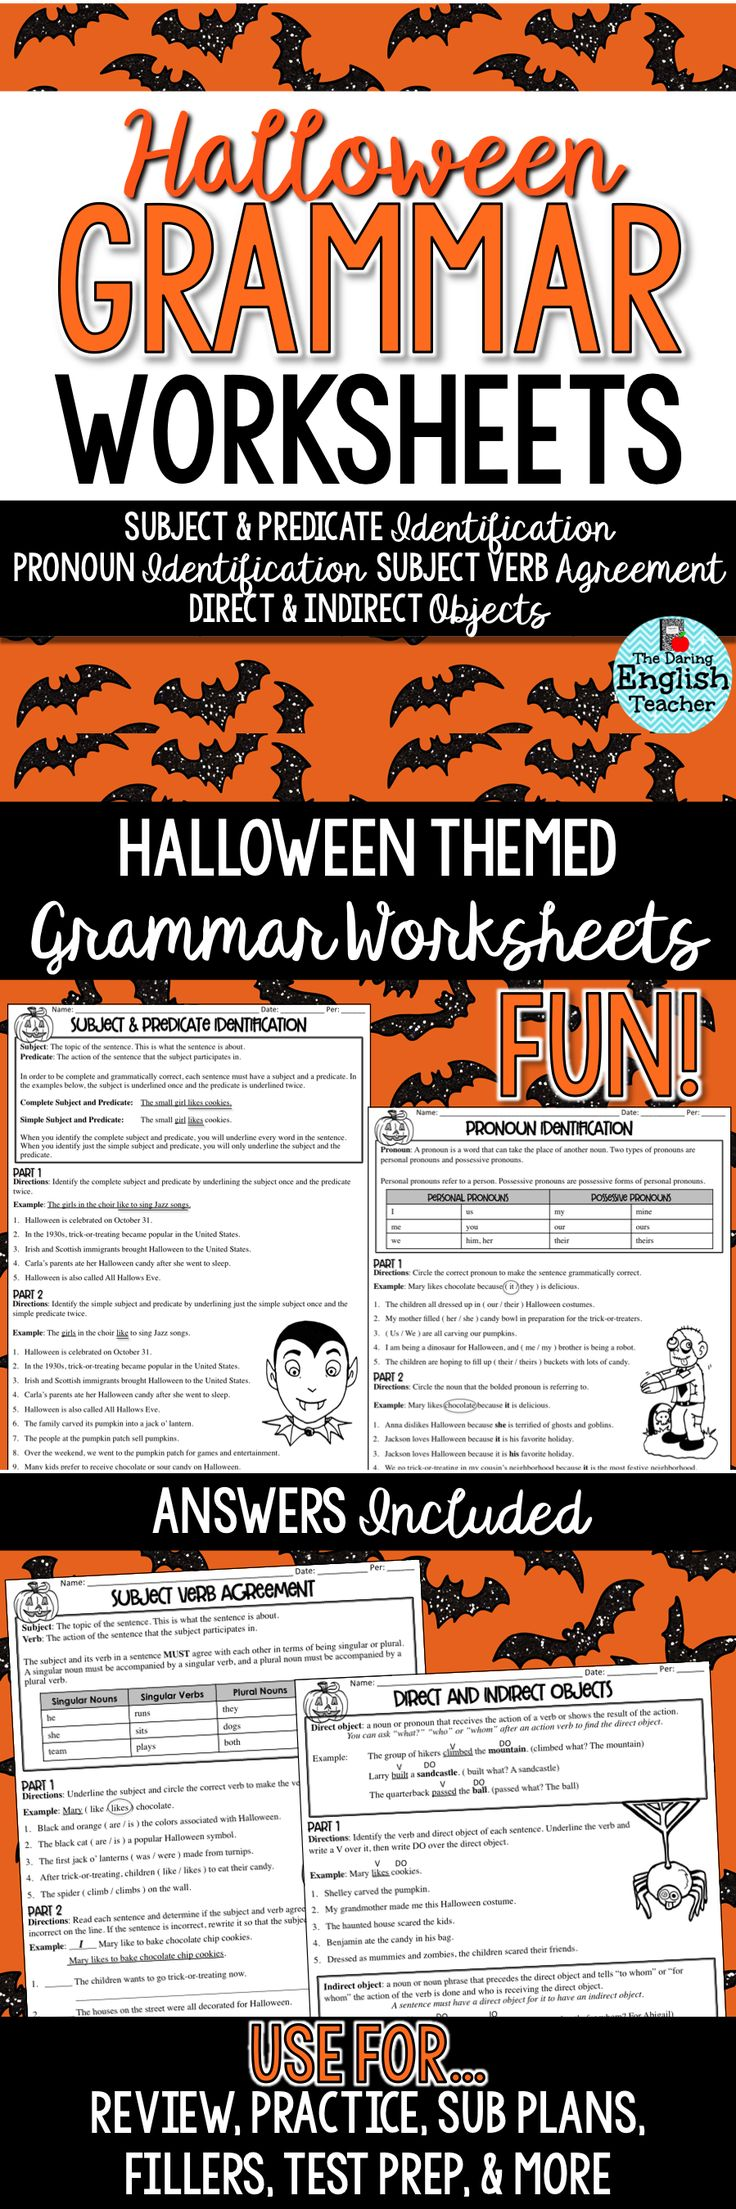 Engage your students in thoughtful and meaningful grammar instruction this Halloween season with Halloween Grammar Worksheets for the middle school and high school English language arts classroom!